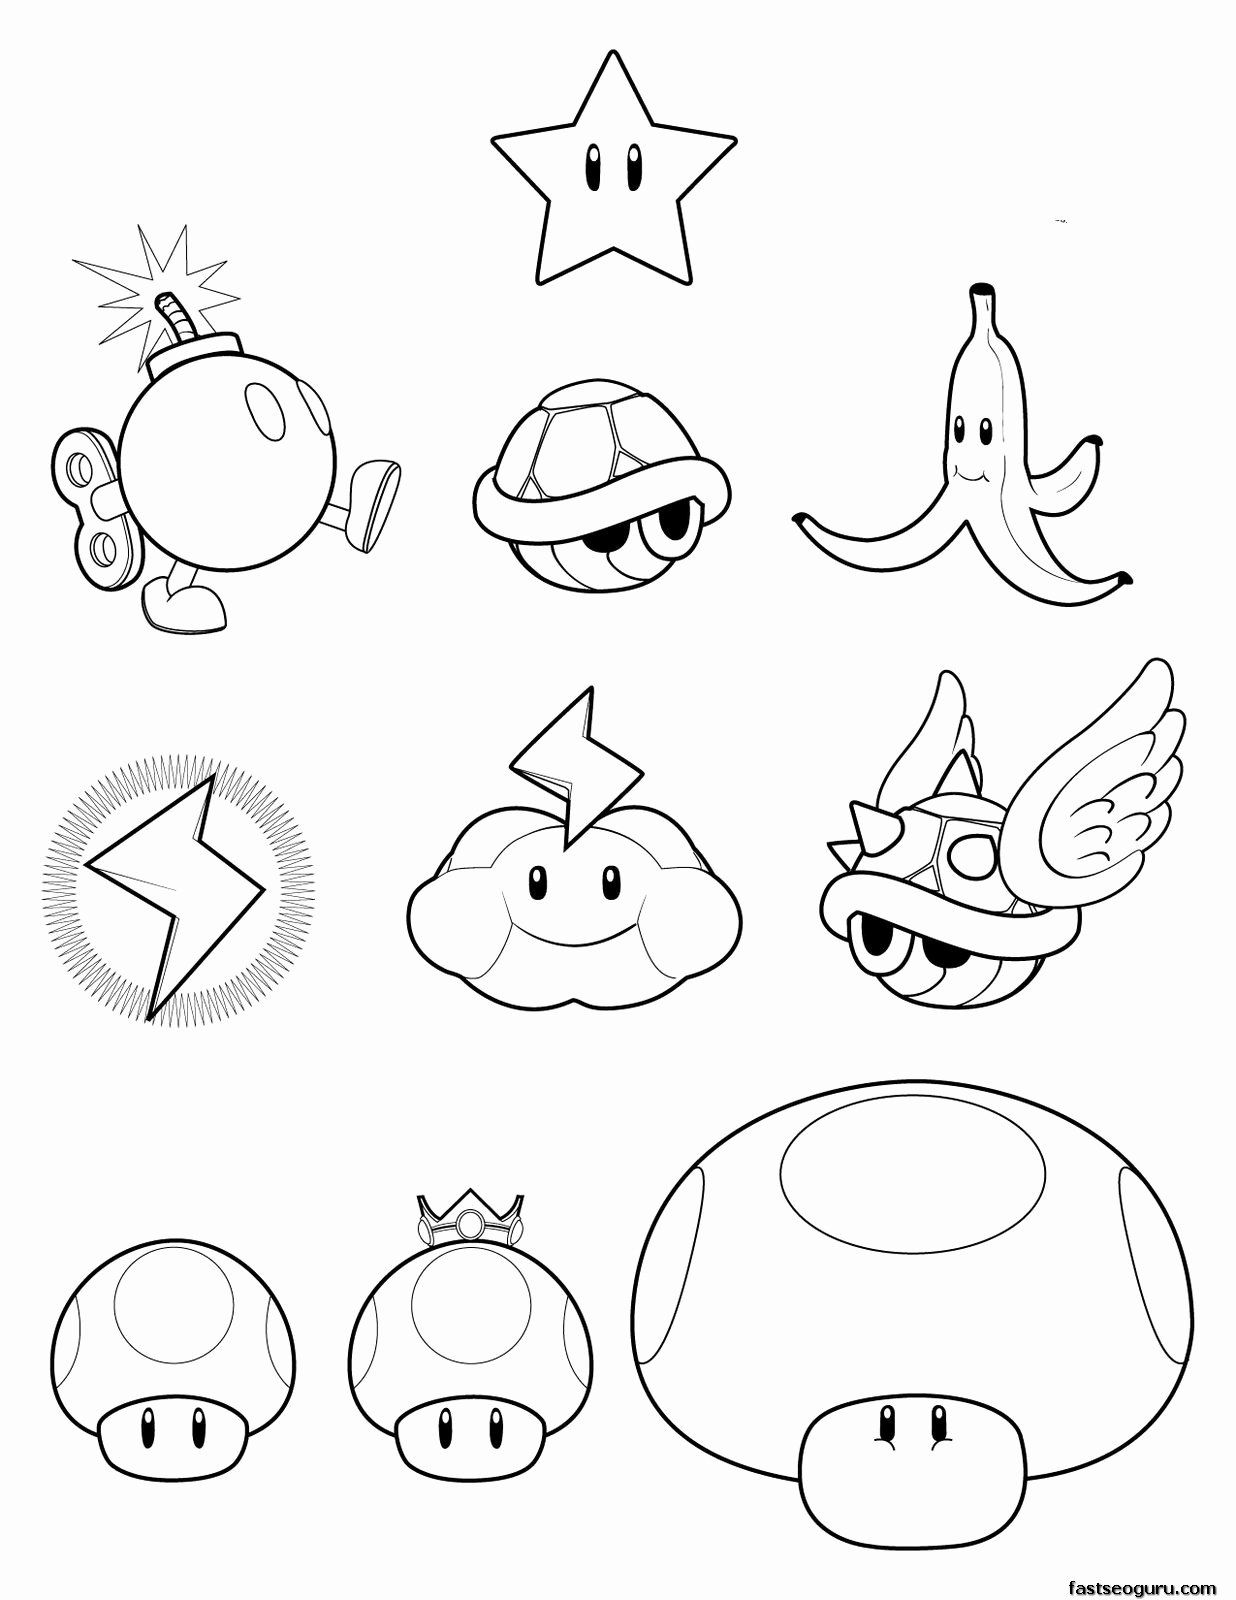 Pin By Alexis Tepal On Tattoo Super Mario Coloring Pages Mario Coloring Pages Coloring Books